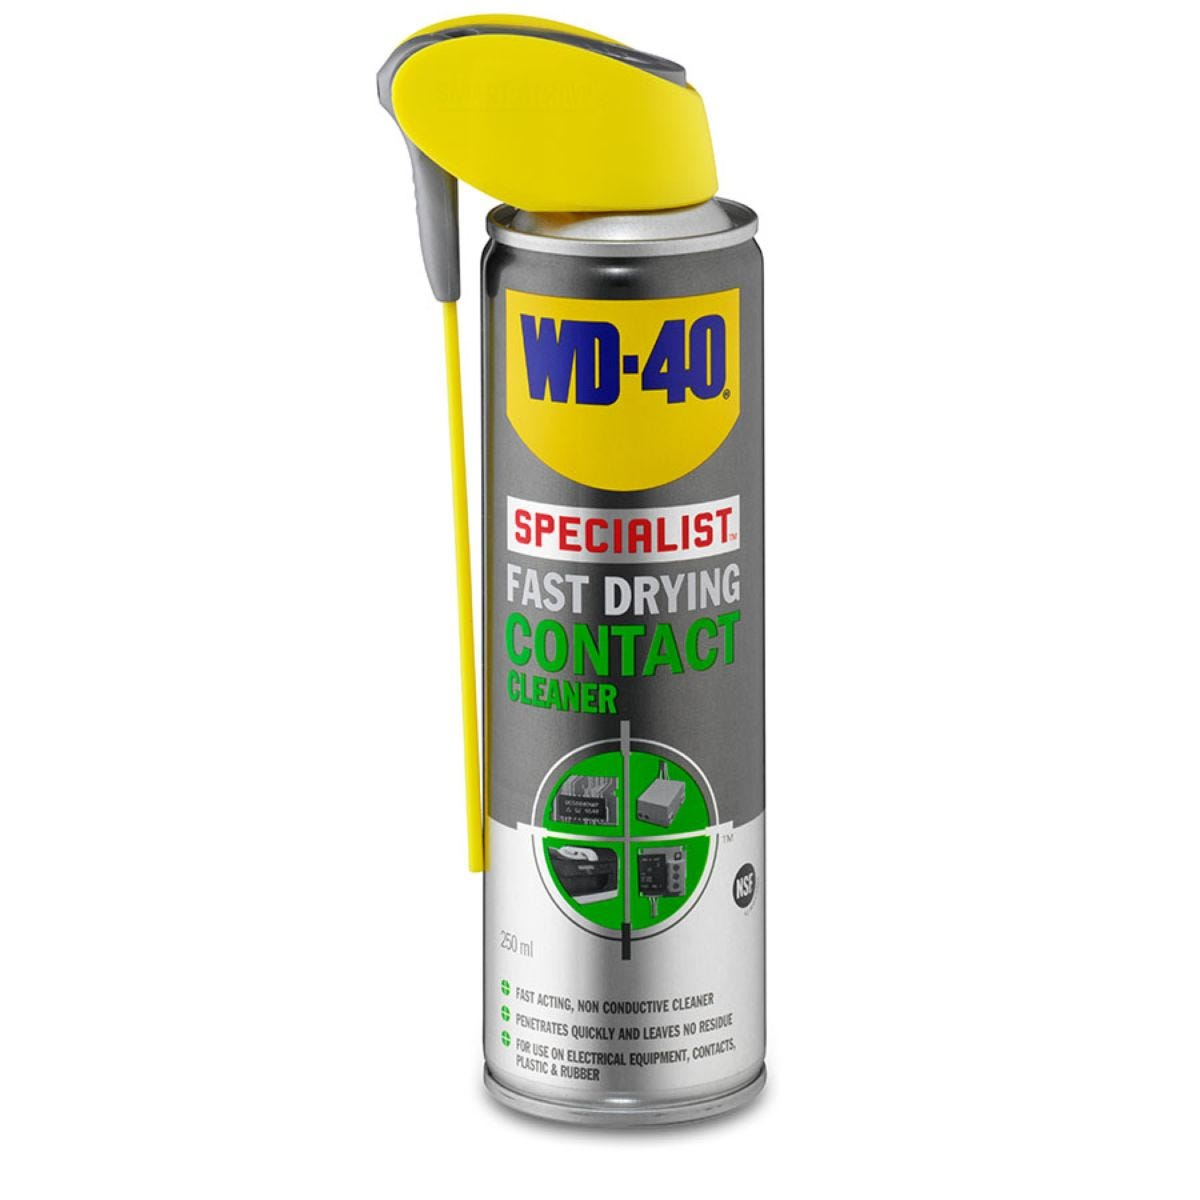 WD-40 Specialist Contact Cleaner – 250ml